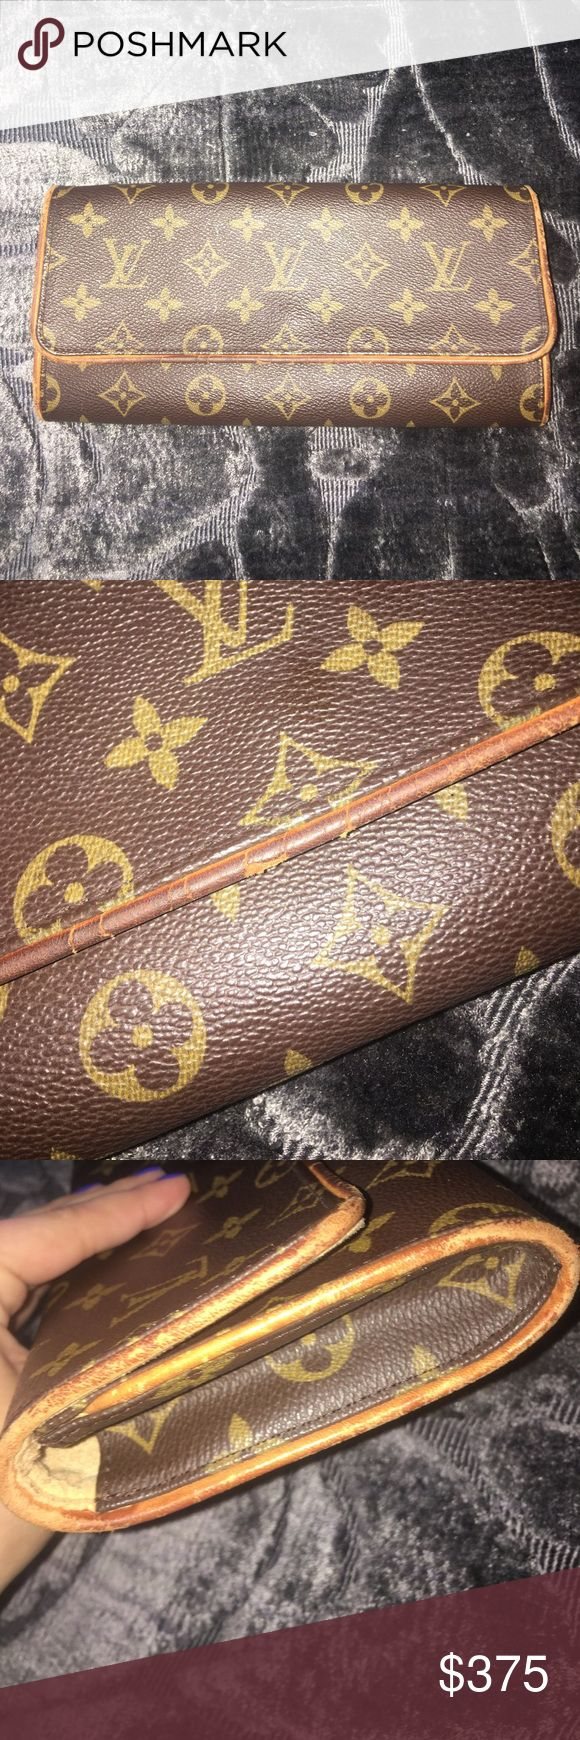 Vintage Louis Vuitton Clutch vintage Louis Vuitton clutch. wear and tear around the edges and inside (see in pictures). has one pocket. can attach straps inside but straps not included. perfect for everyday use!!! willing to bargain. no trades Louis Vuitton Bags Clutches & Wristlets